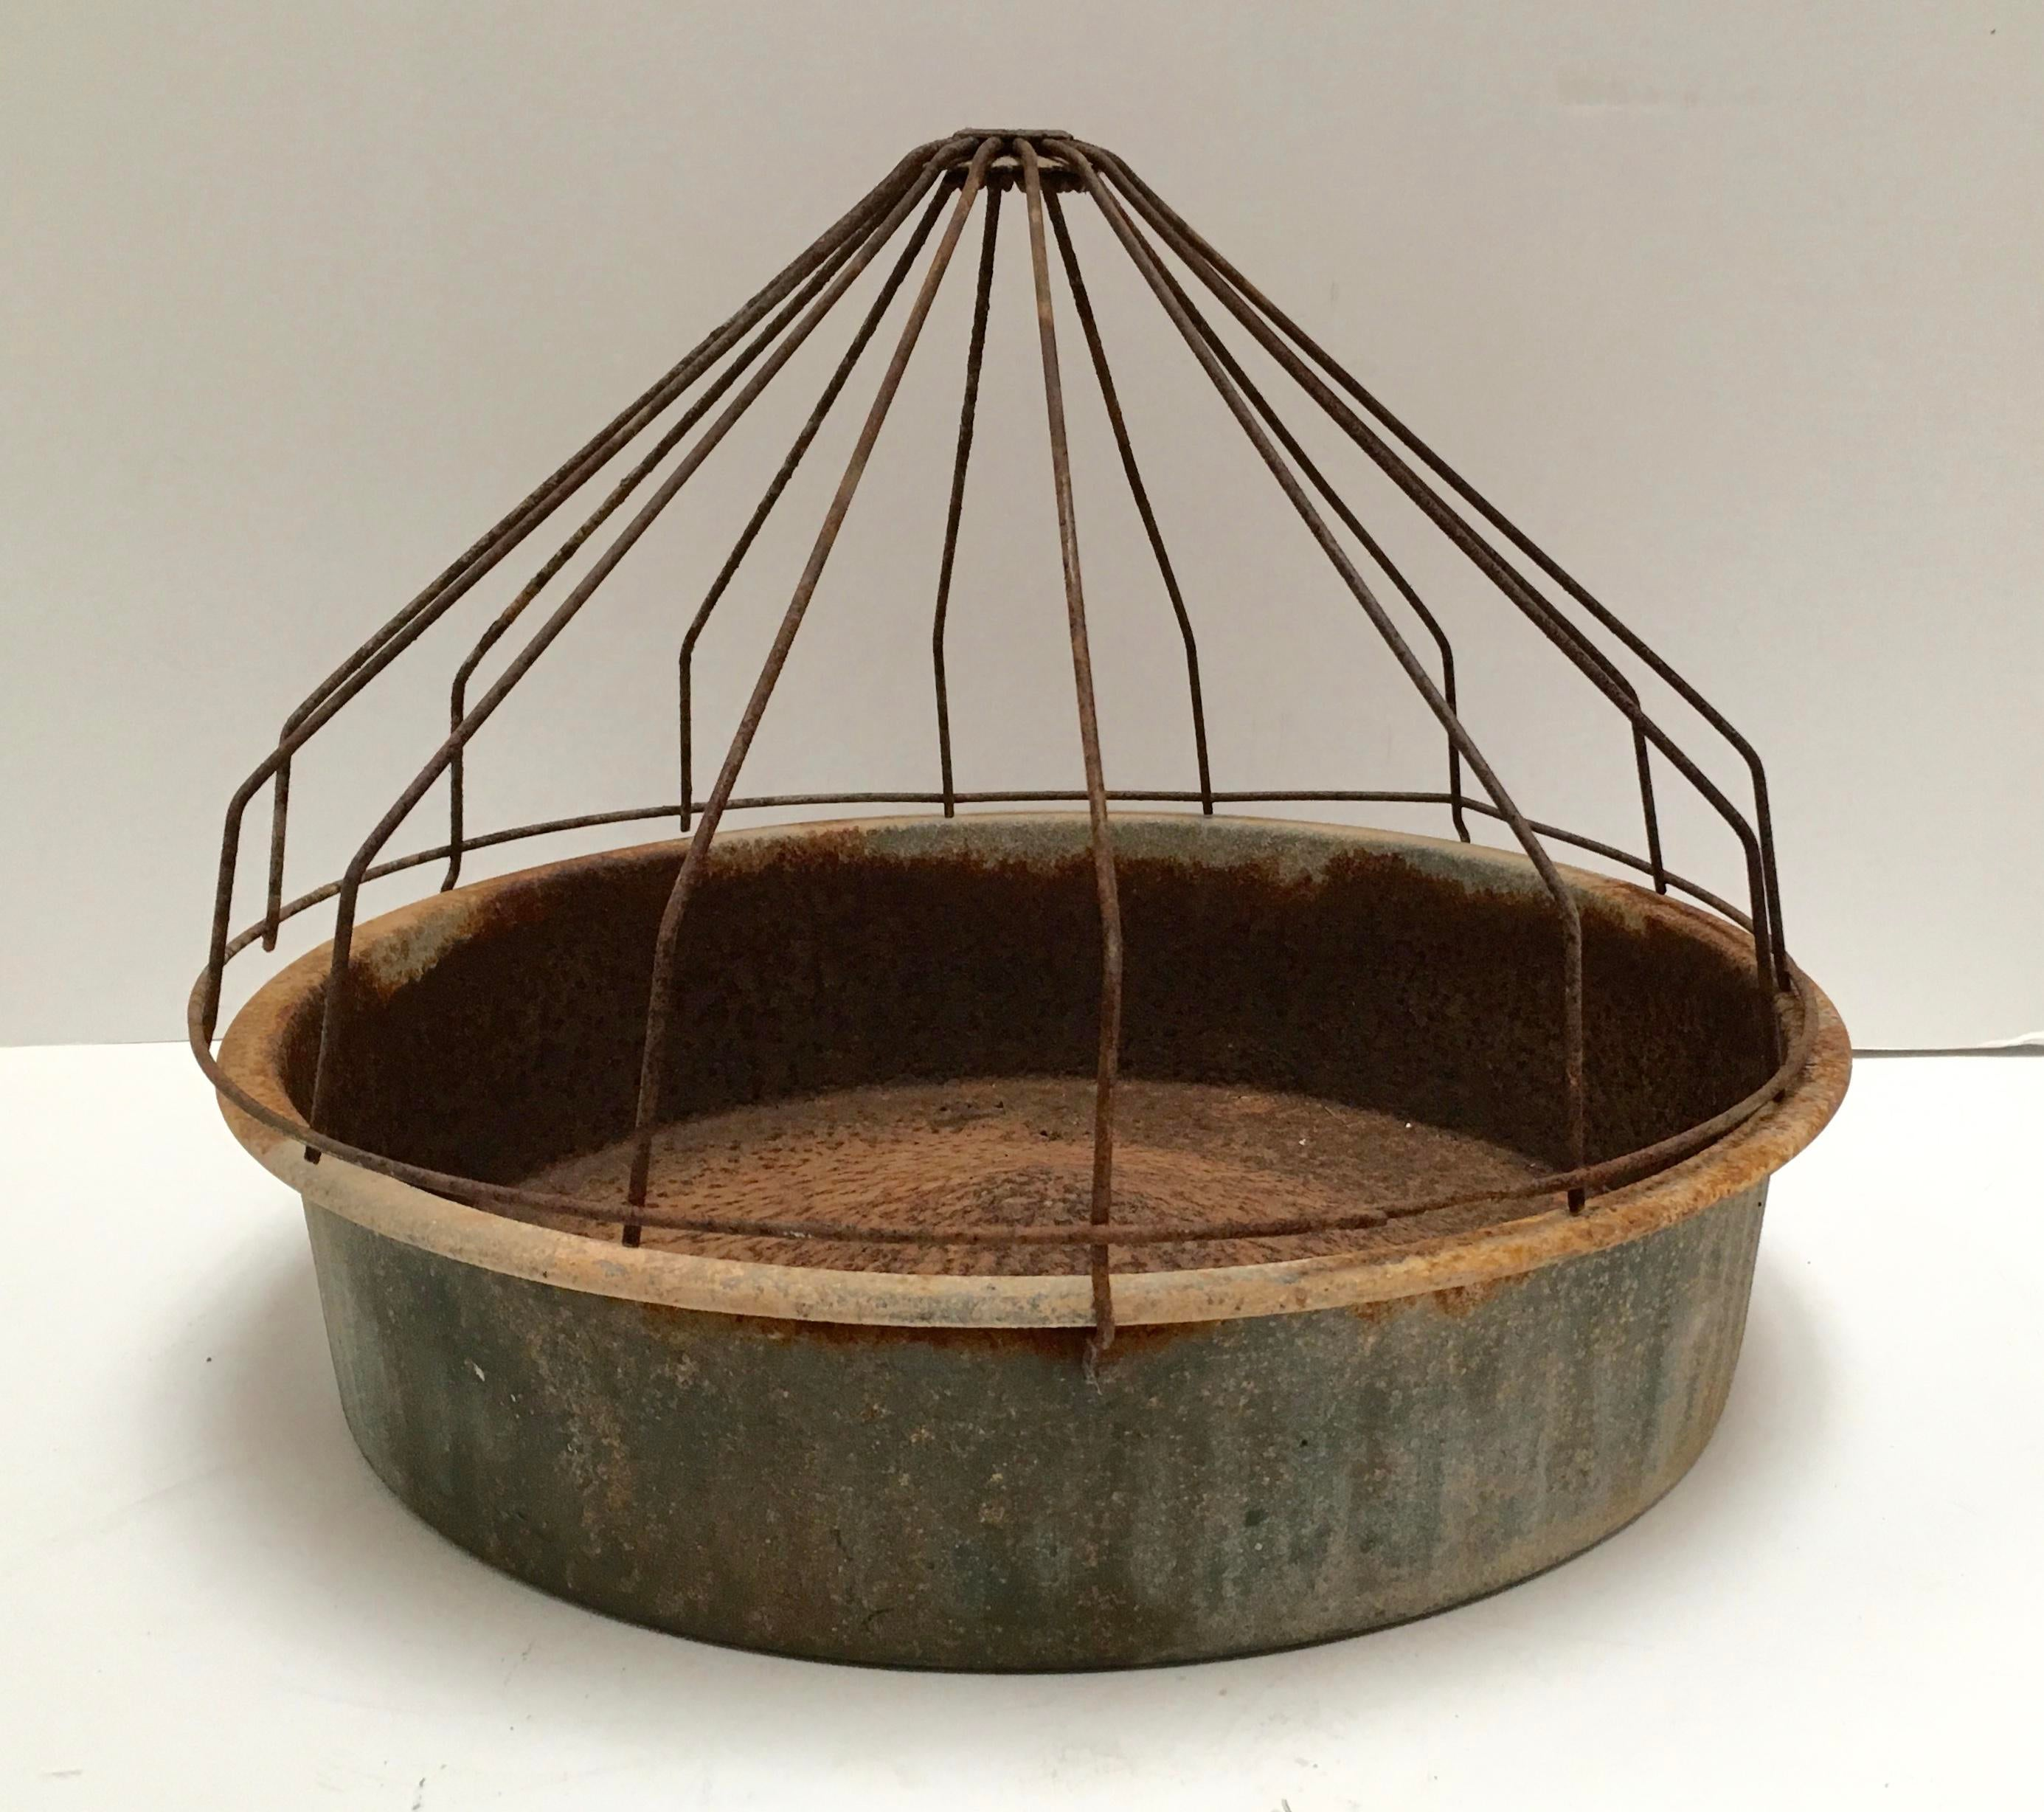 Captivating Hard To Find Chicken Feeder With Original Dome Attached. Center Of The  Bottom Tray Is